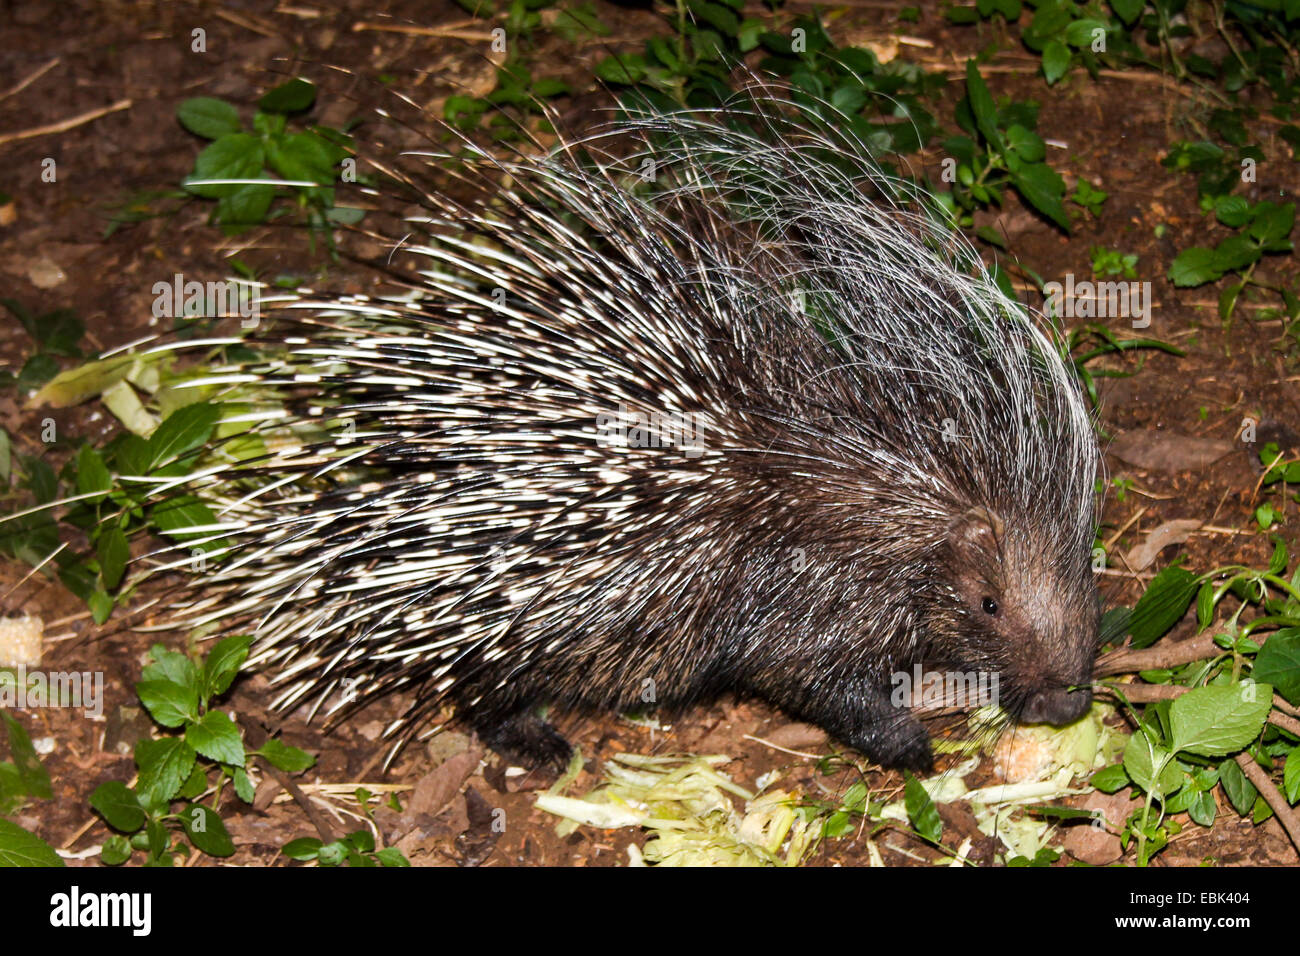 Porcupine in Lilongwe. - Stock Image